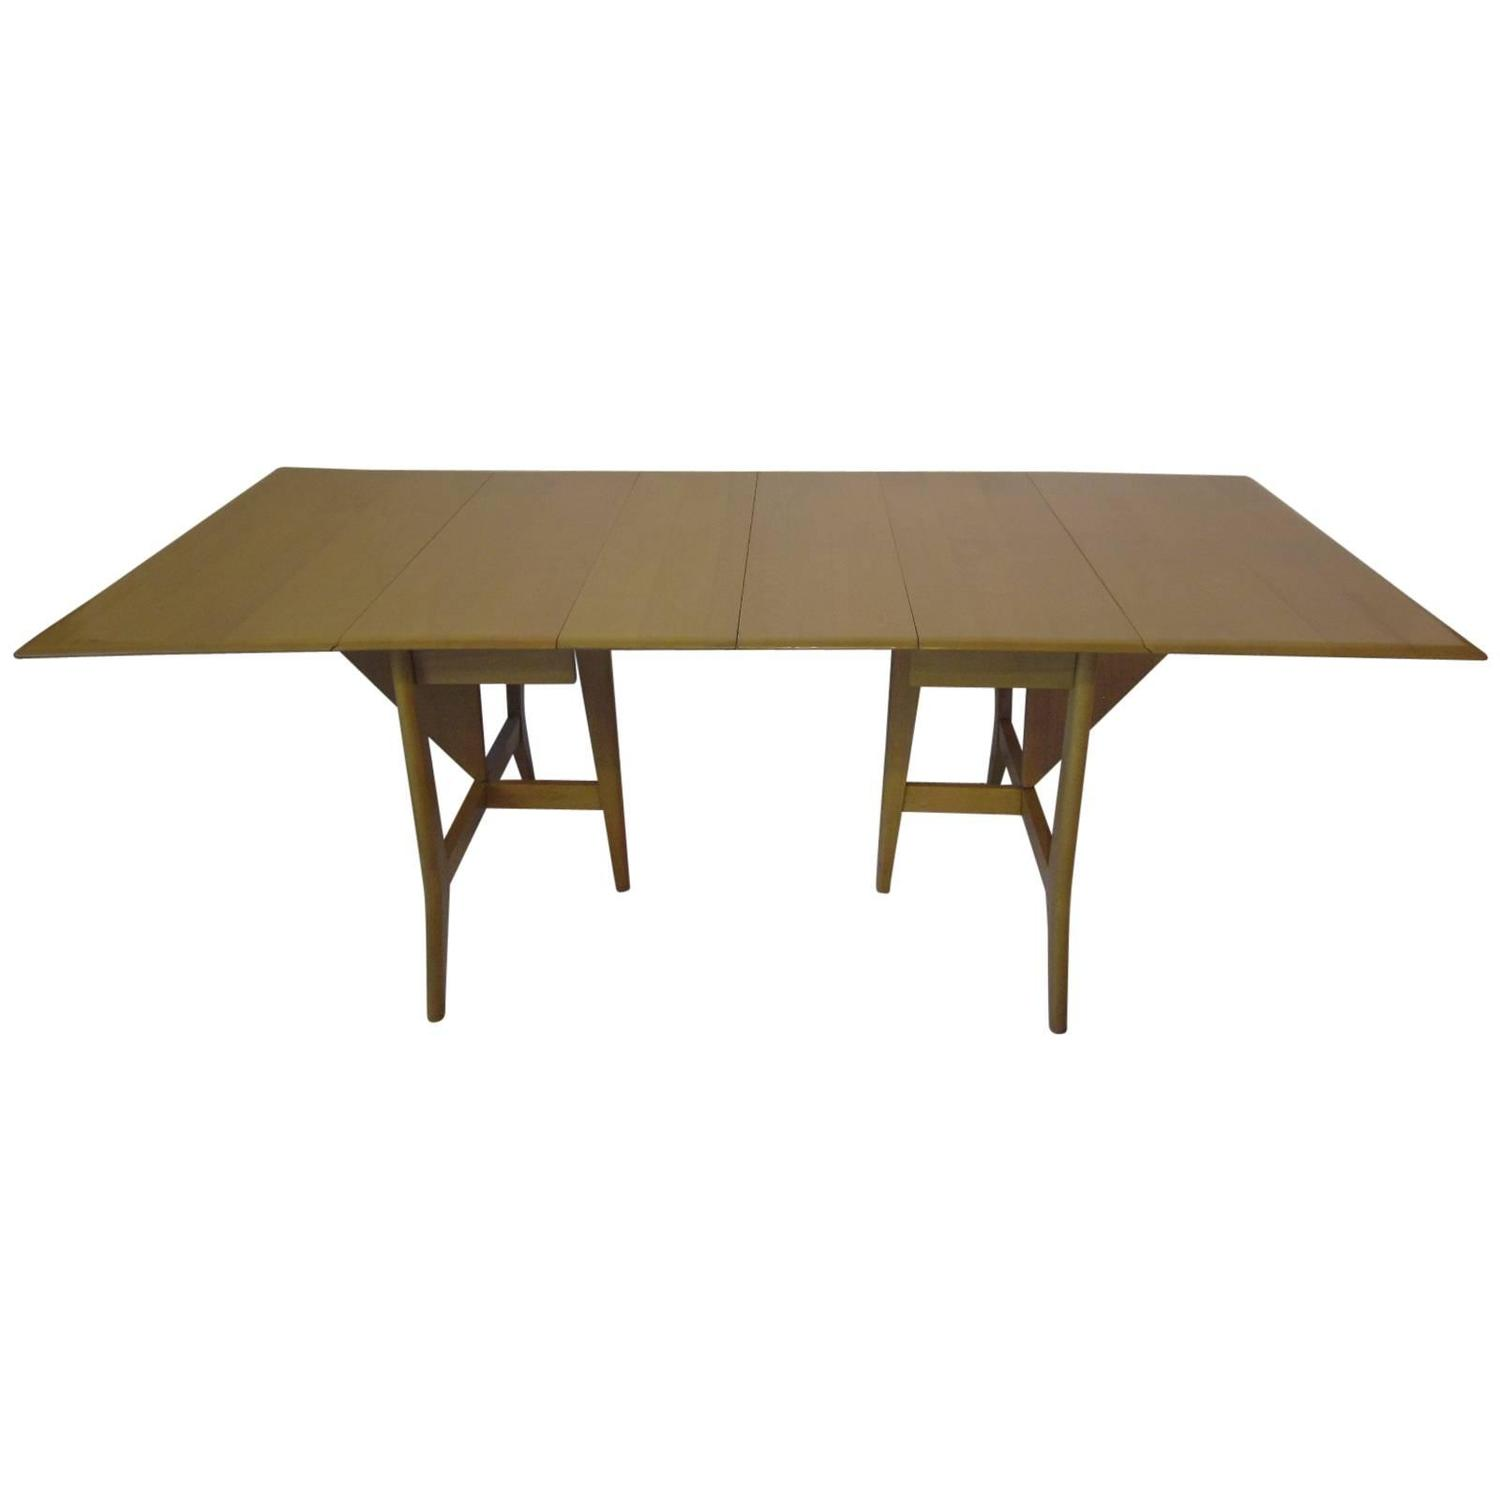 heywood mid century harmonic drop leaf extension dining table at 1stdibs. Black Bedroom Furniture Sets. Home Design Ideas